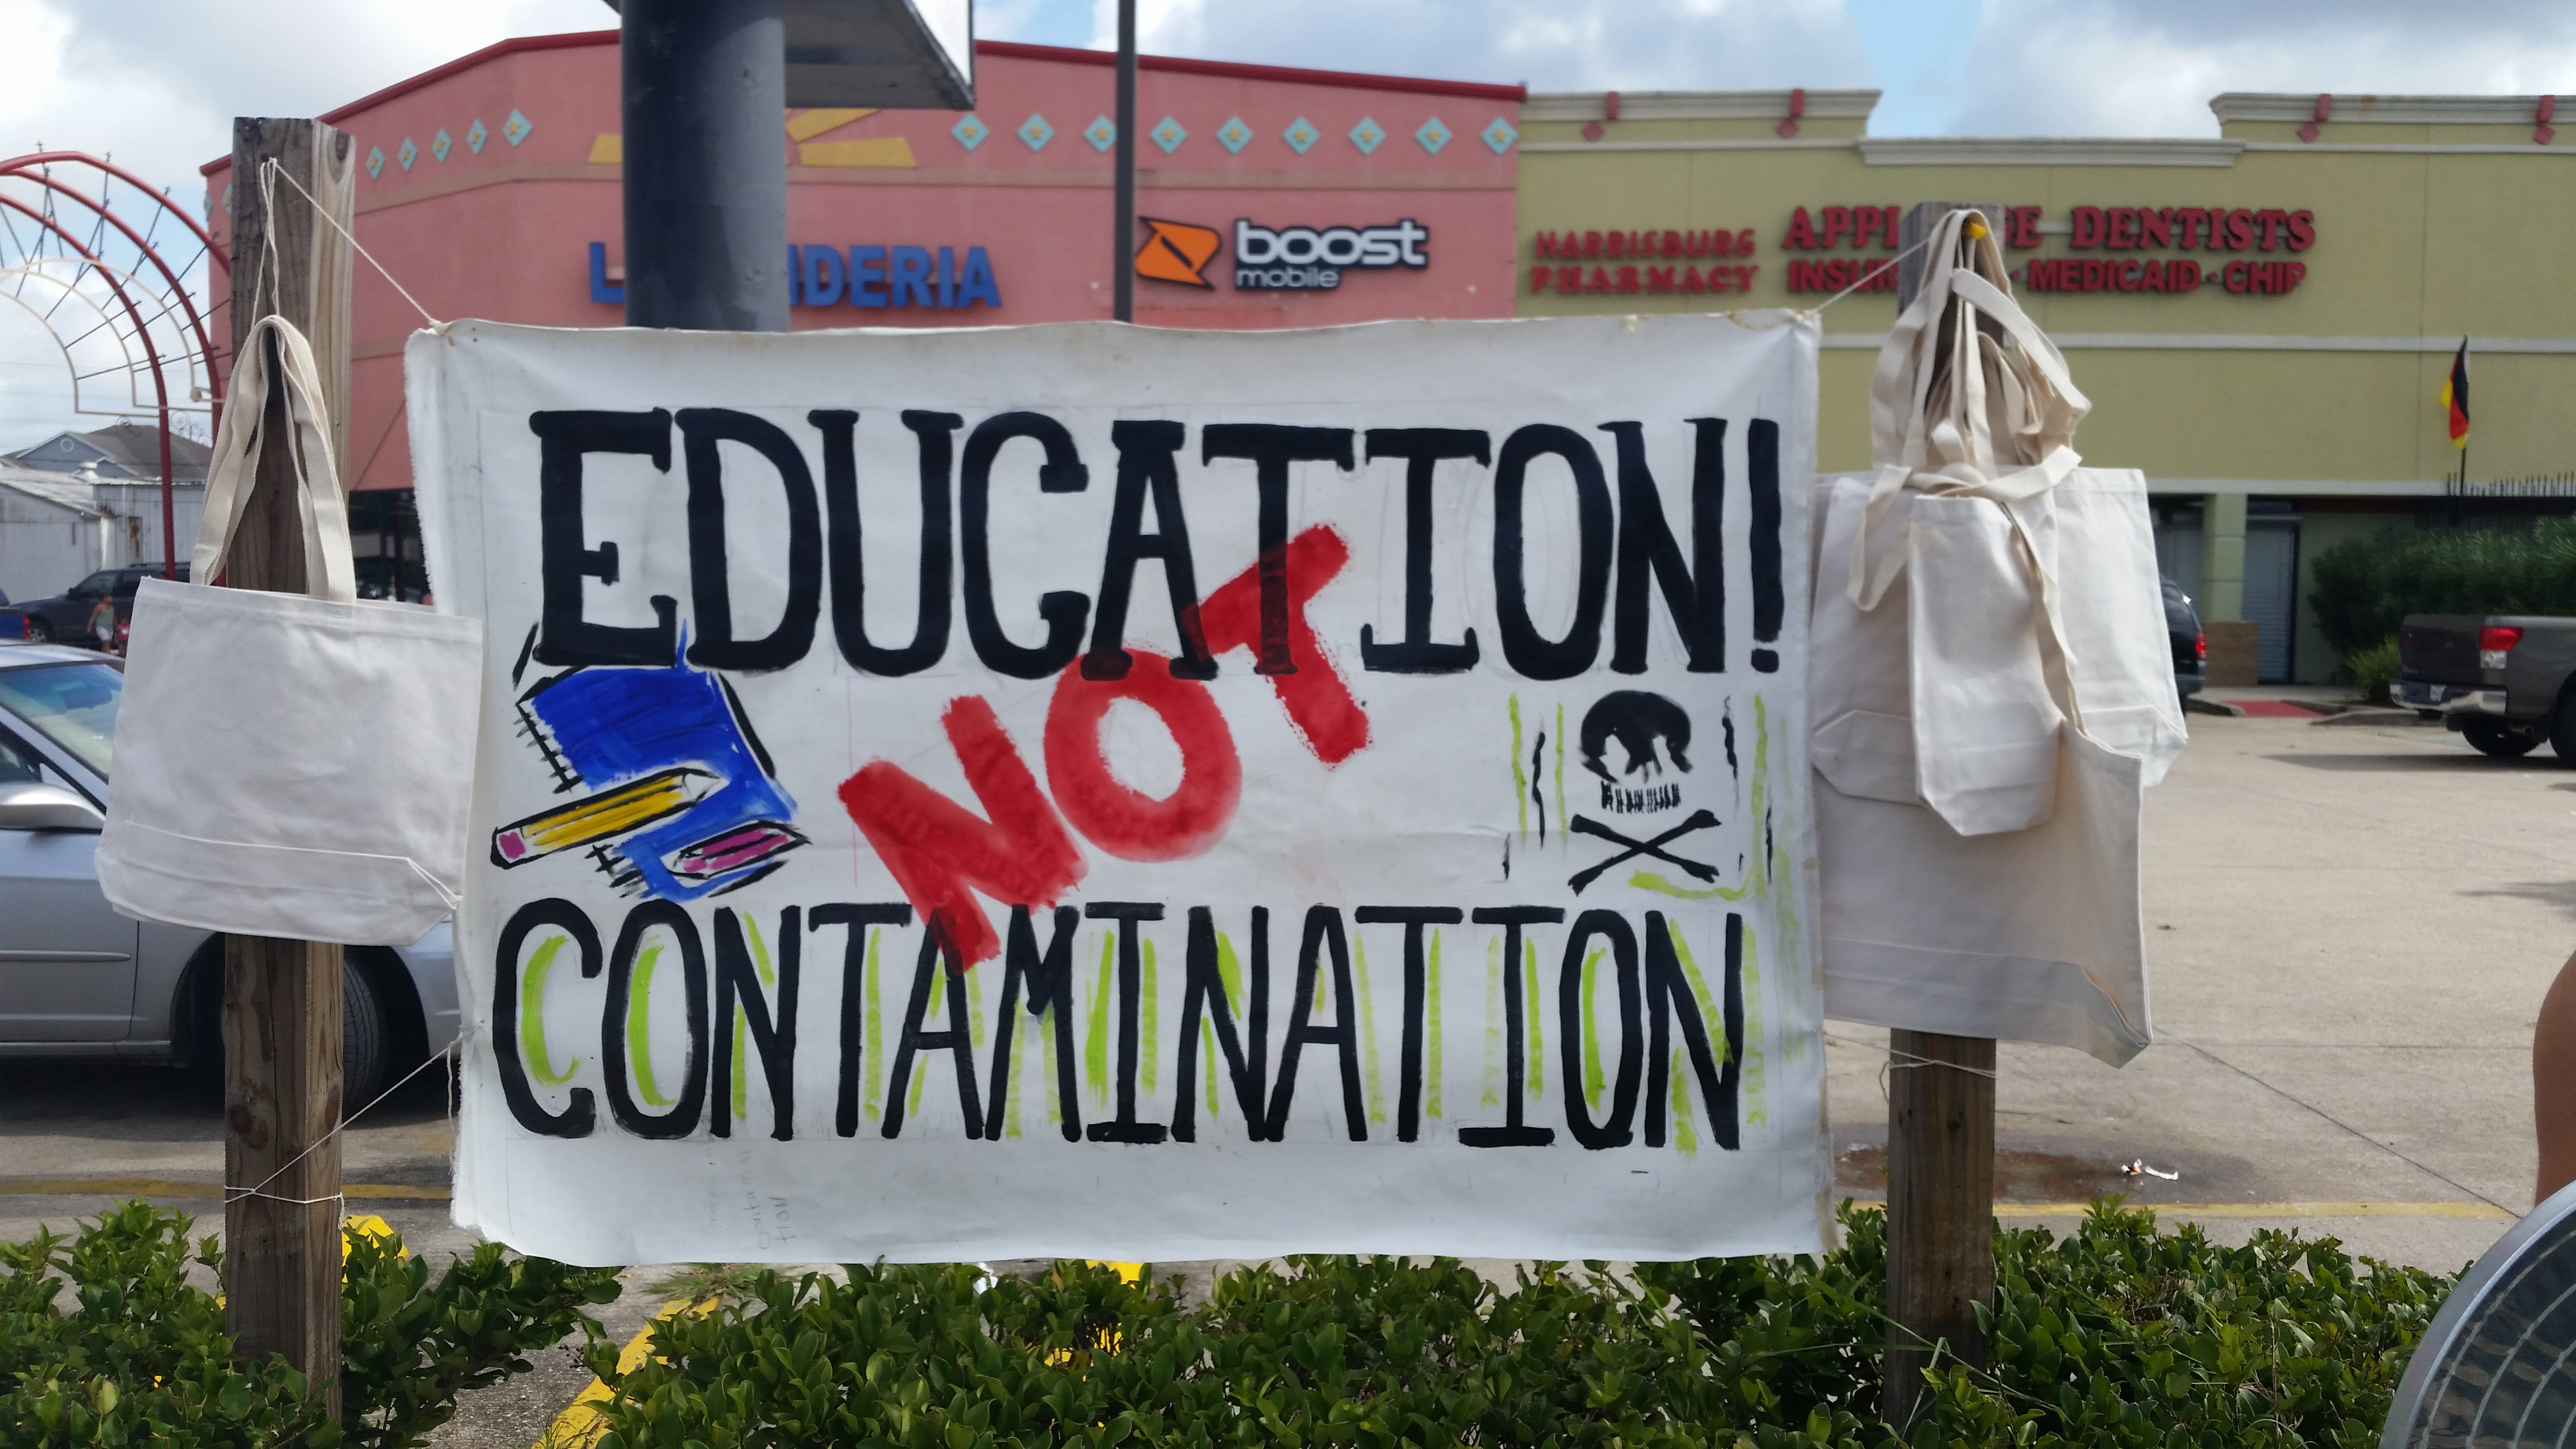 education not contamination